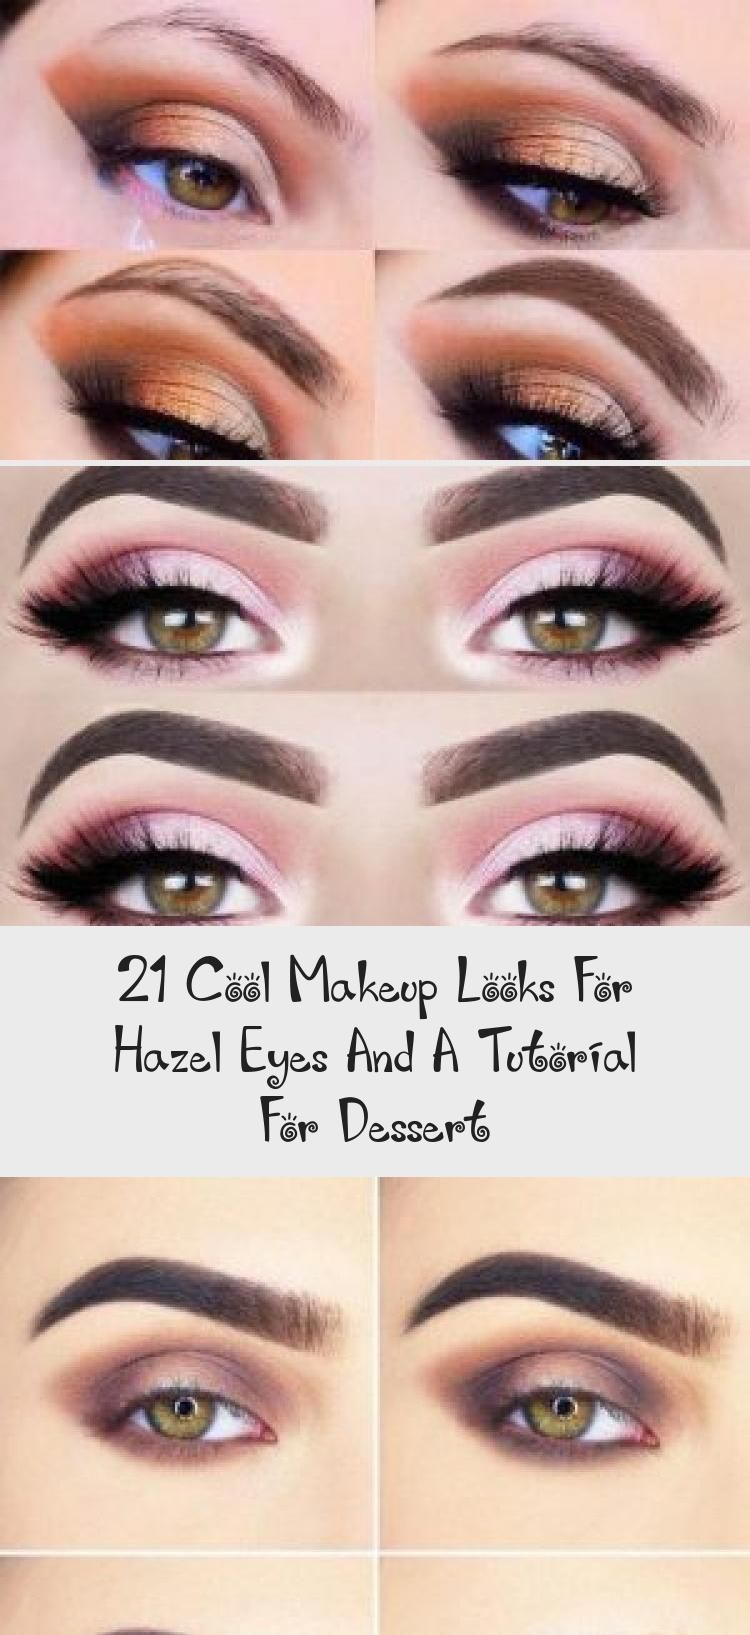 8 Cool Makeup Looks For Hazel Eyes And A Tutorial For Dessert